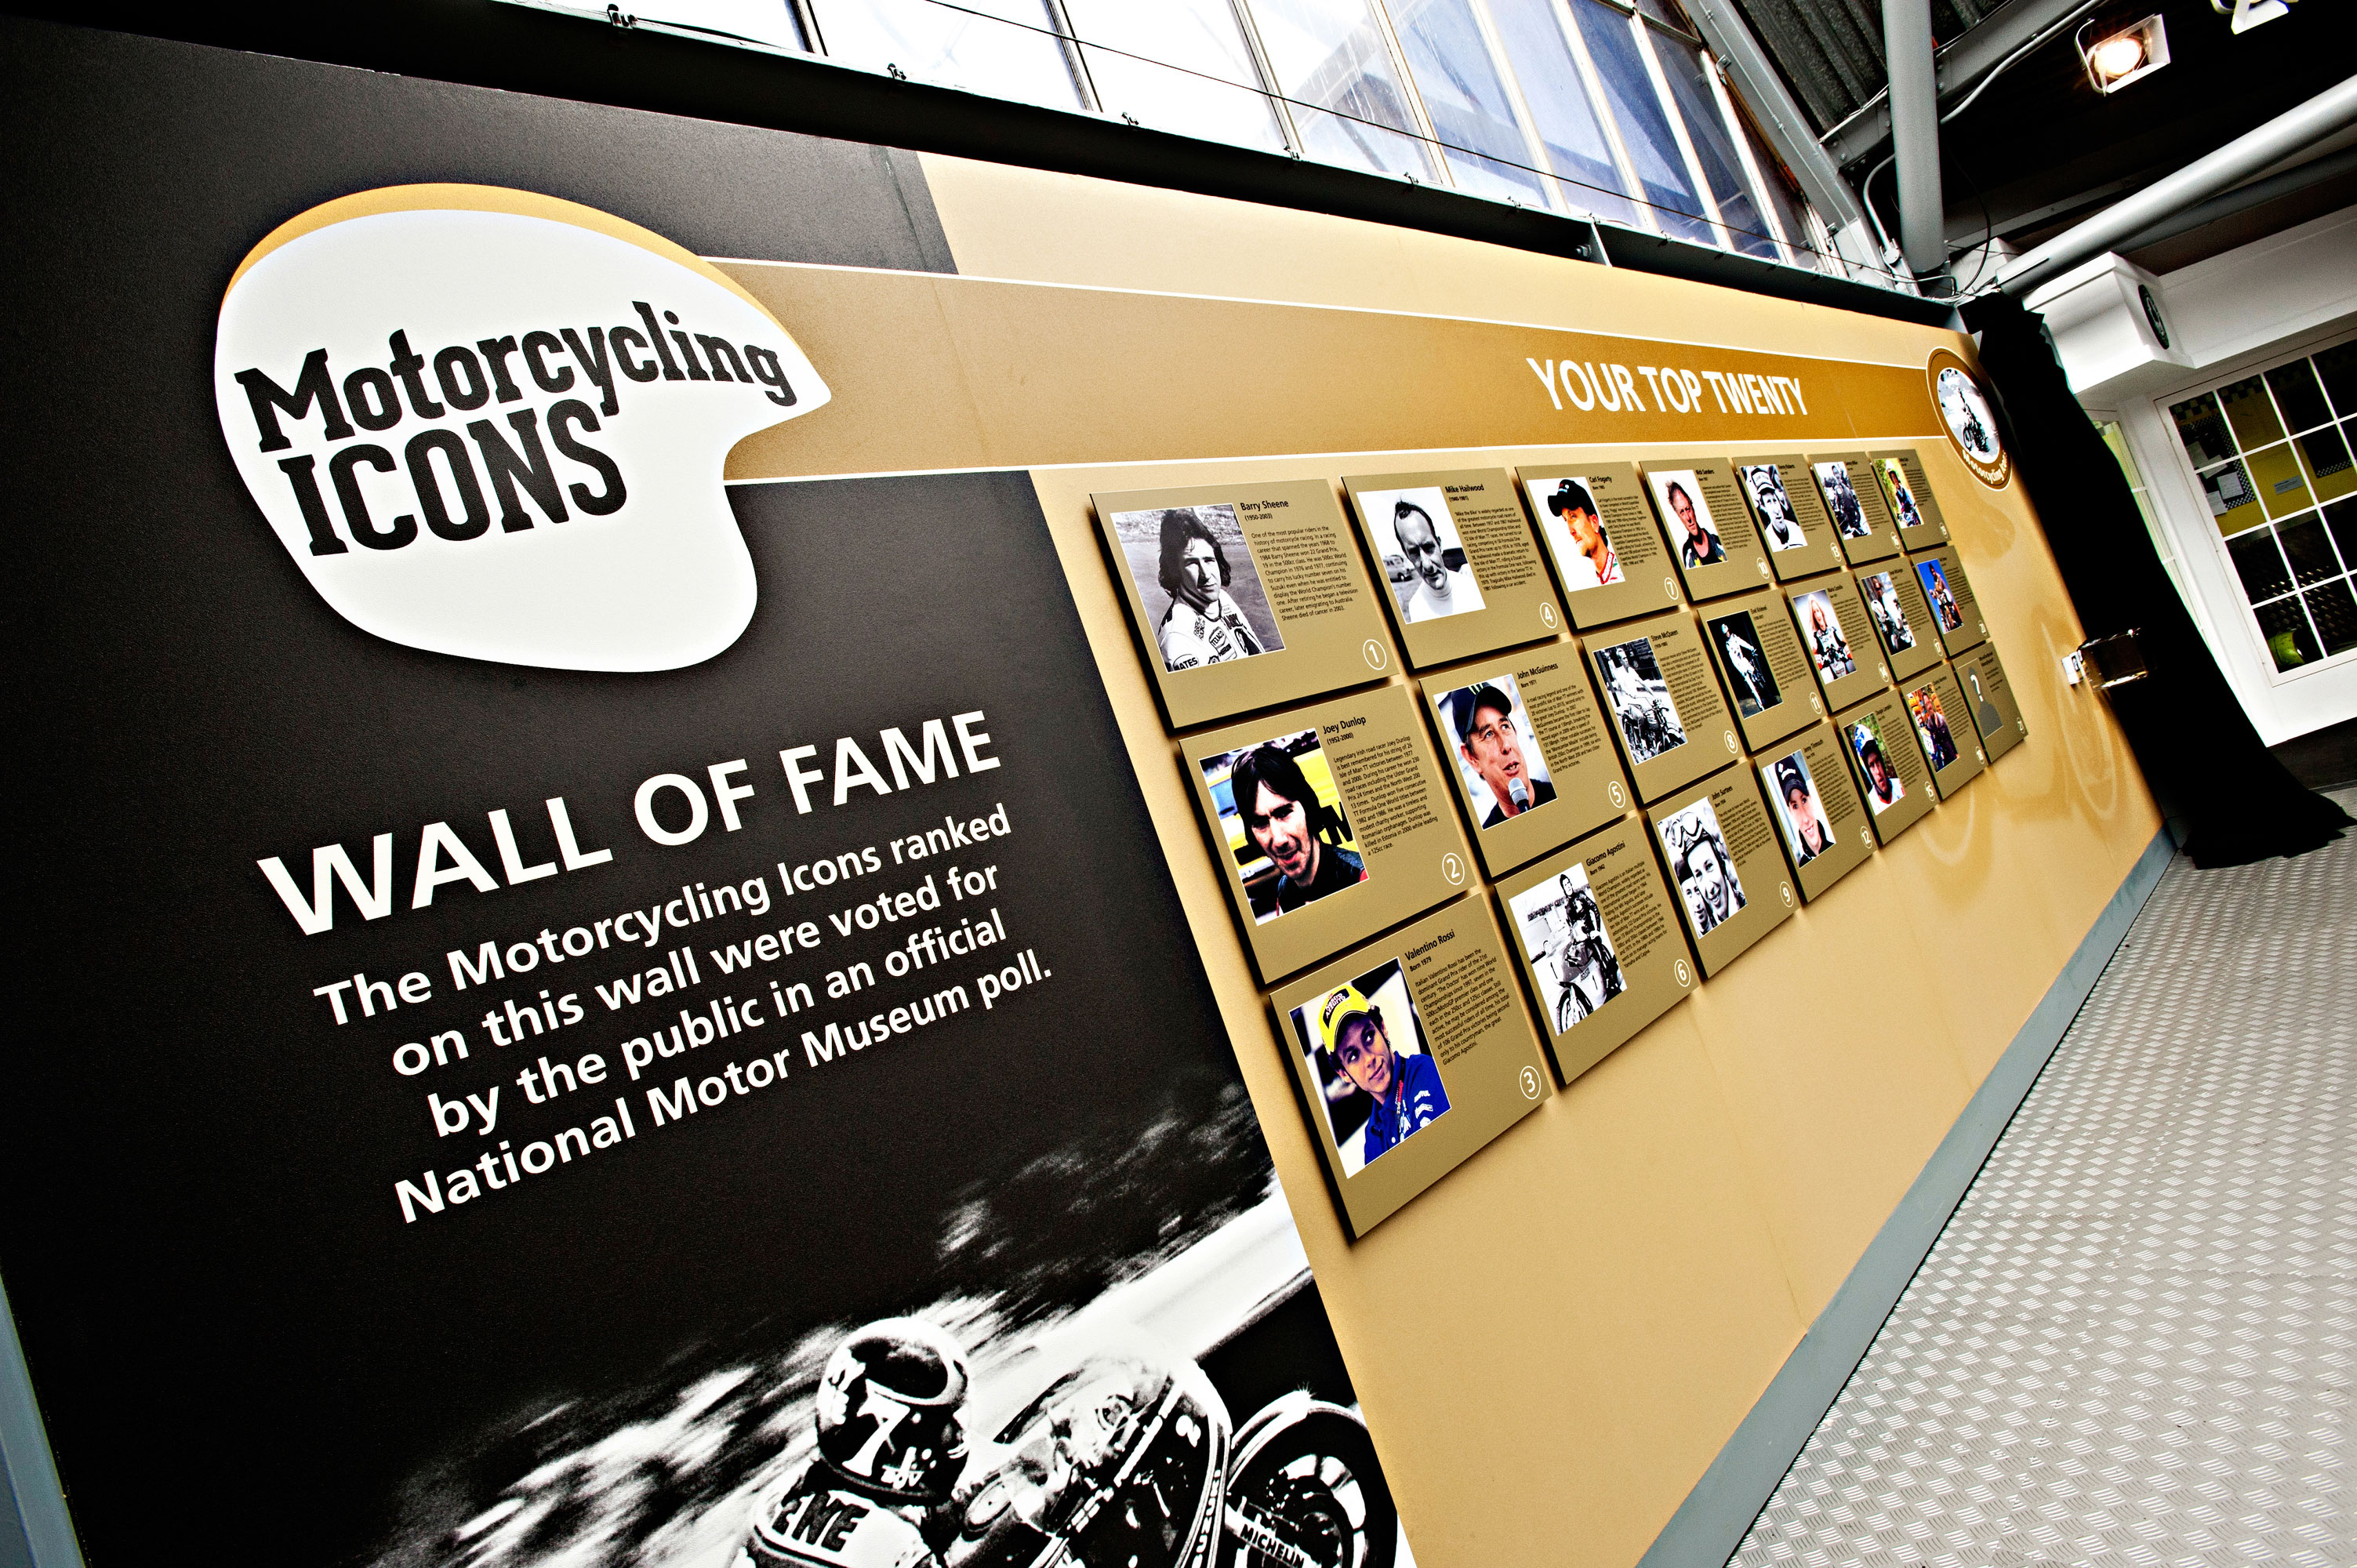 Motorcycling Icons wall of fame at the National Motor Museum